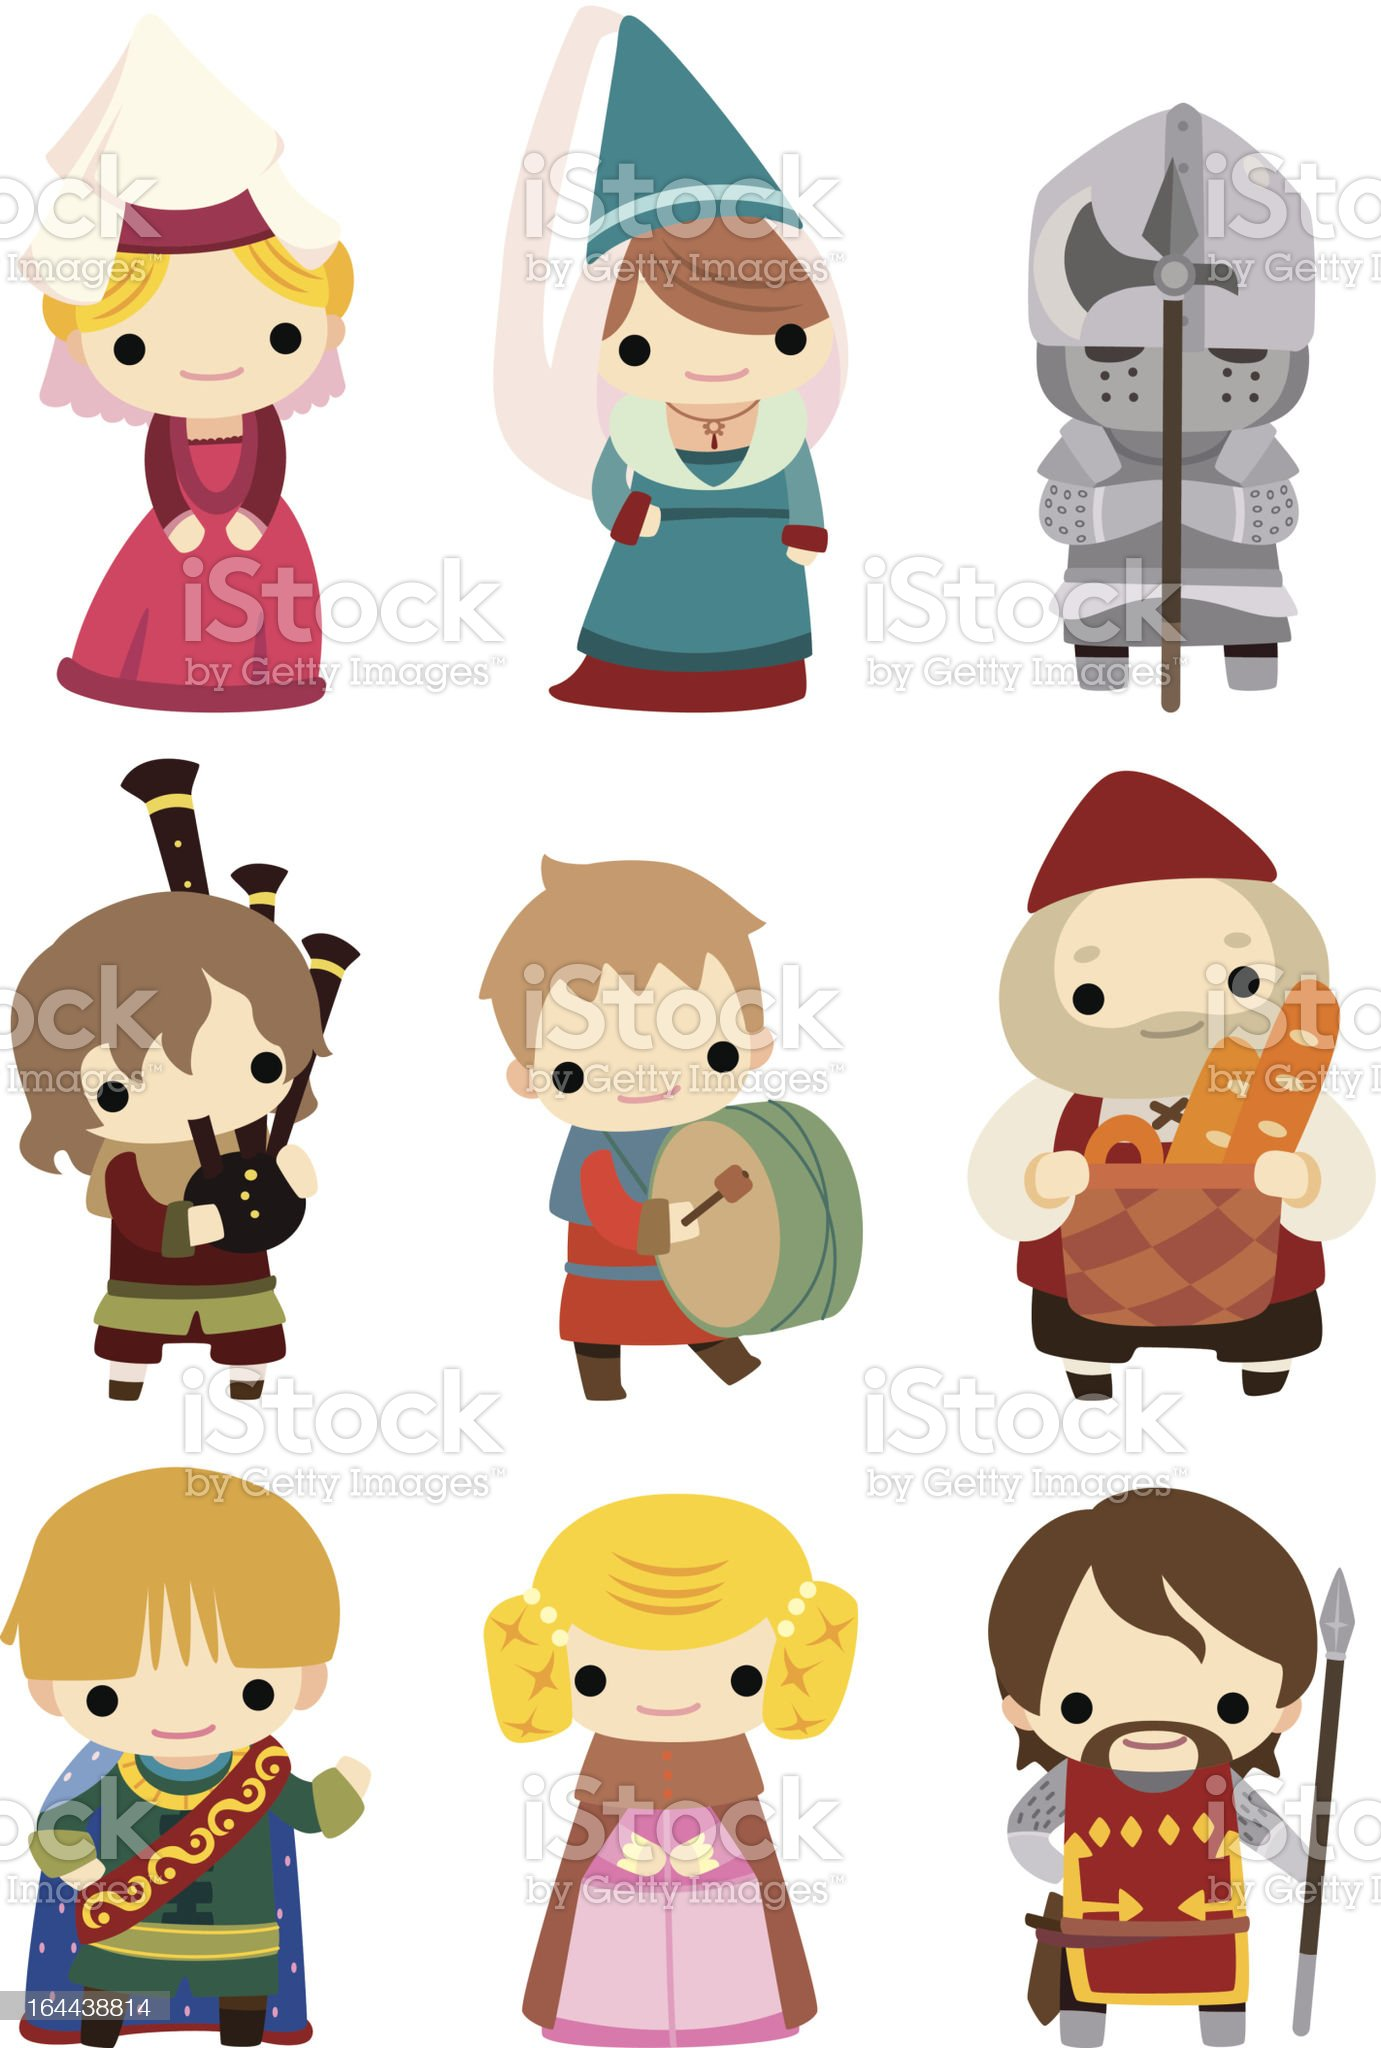 cartoon medieval people icon set royalty-free cartoon medieval people icon set stock vector art & more images of medieval